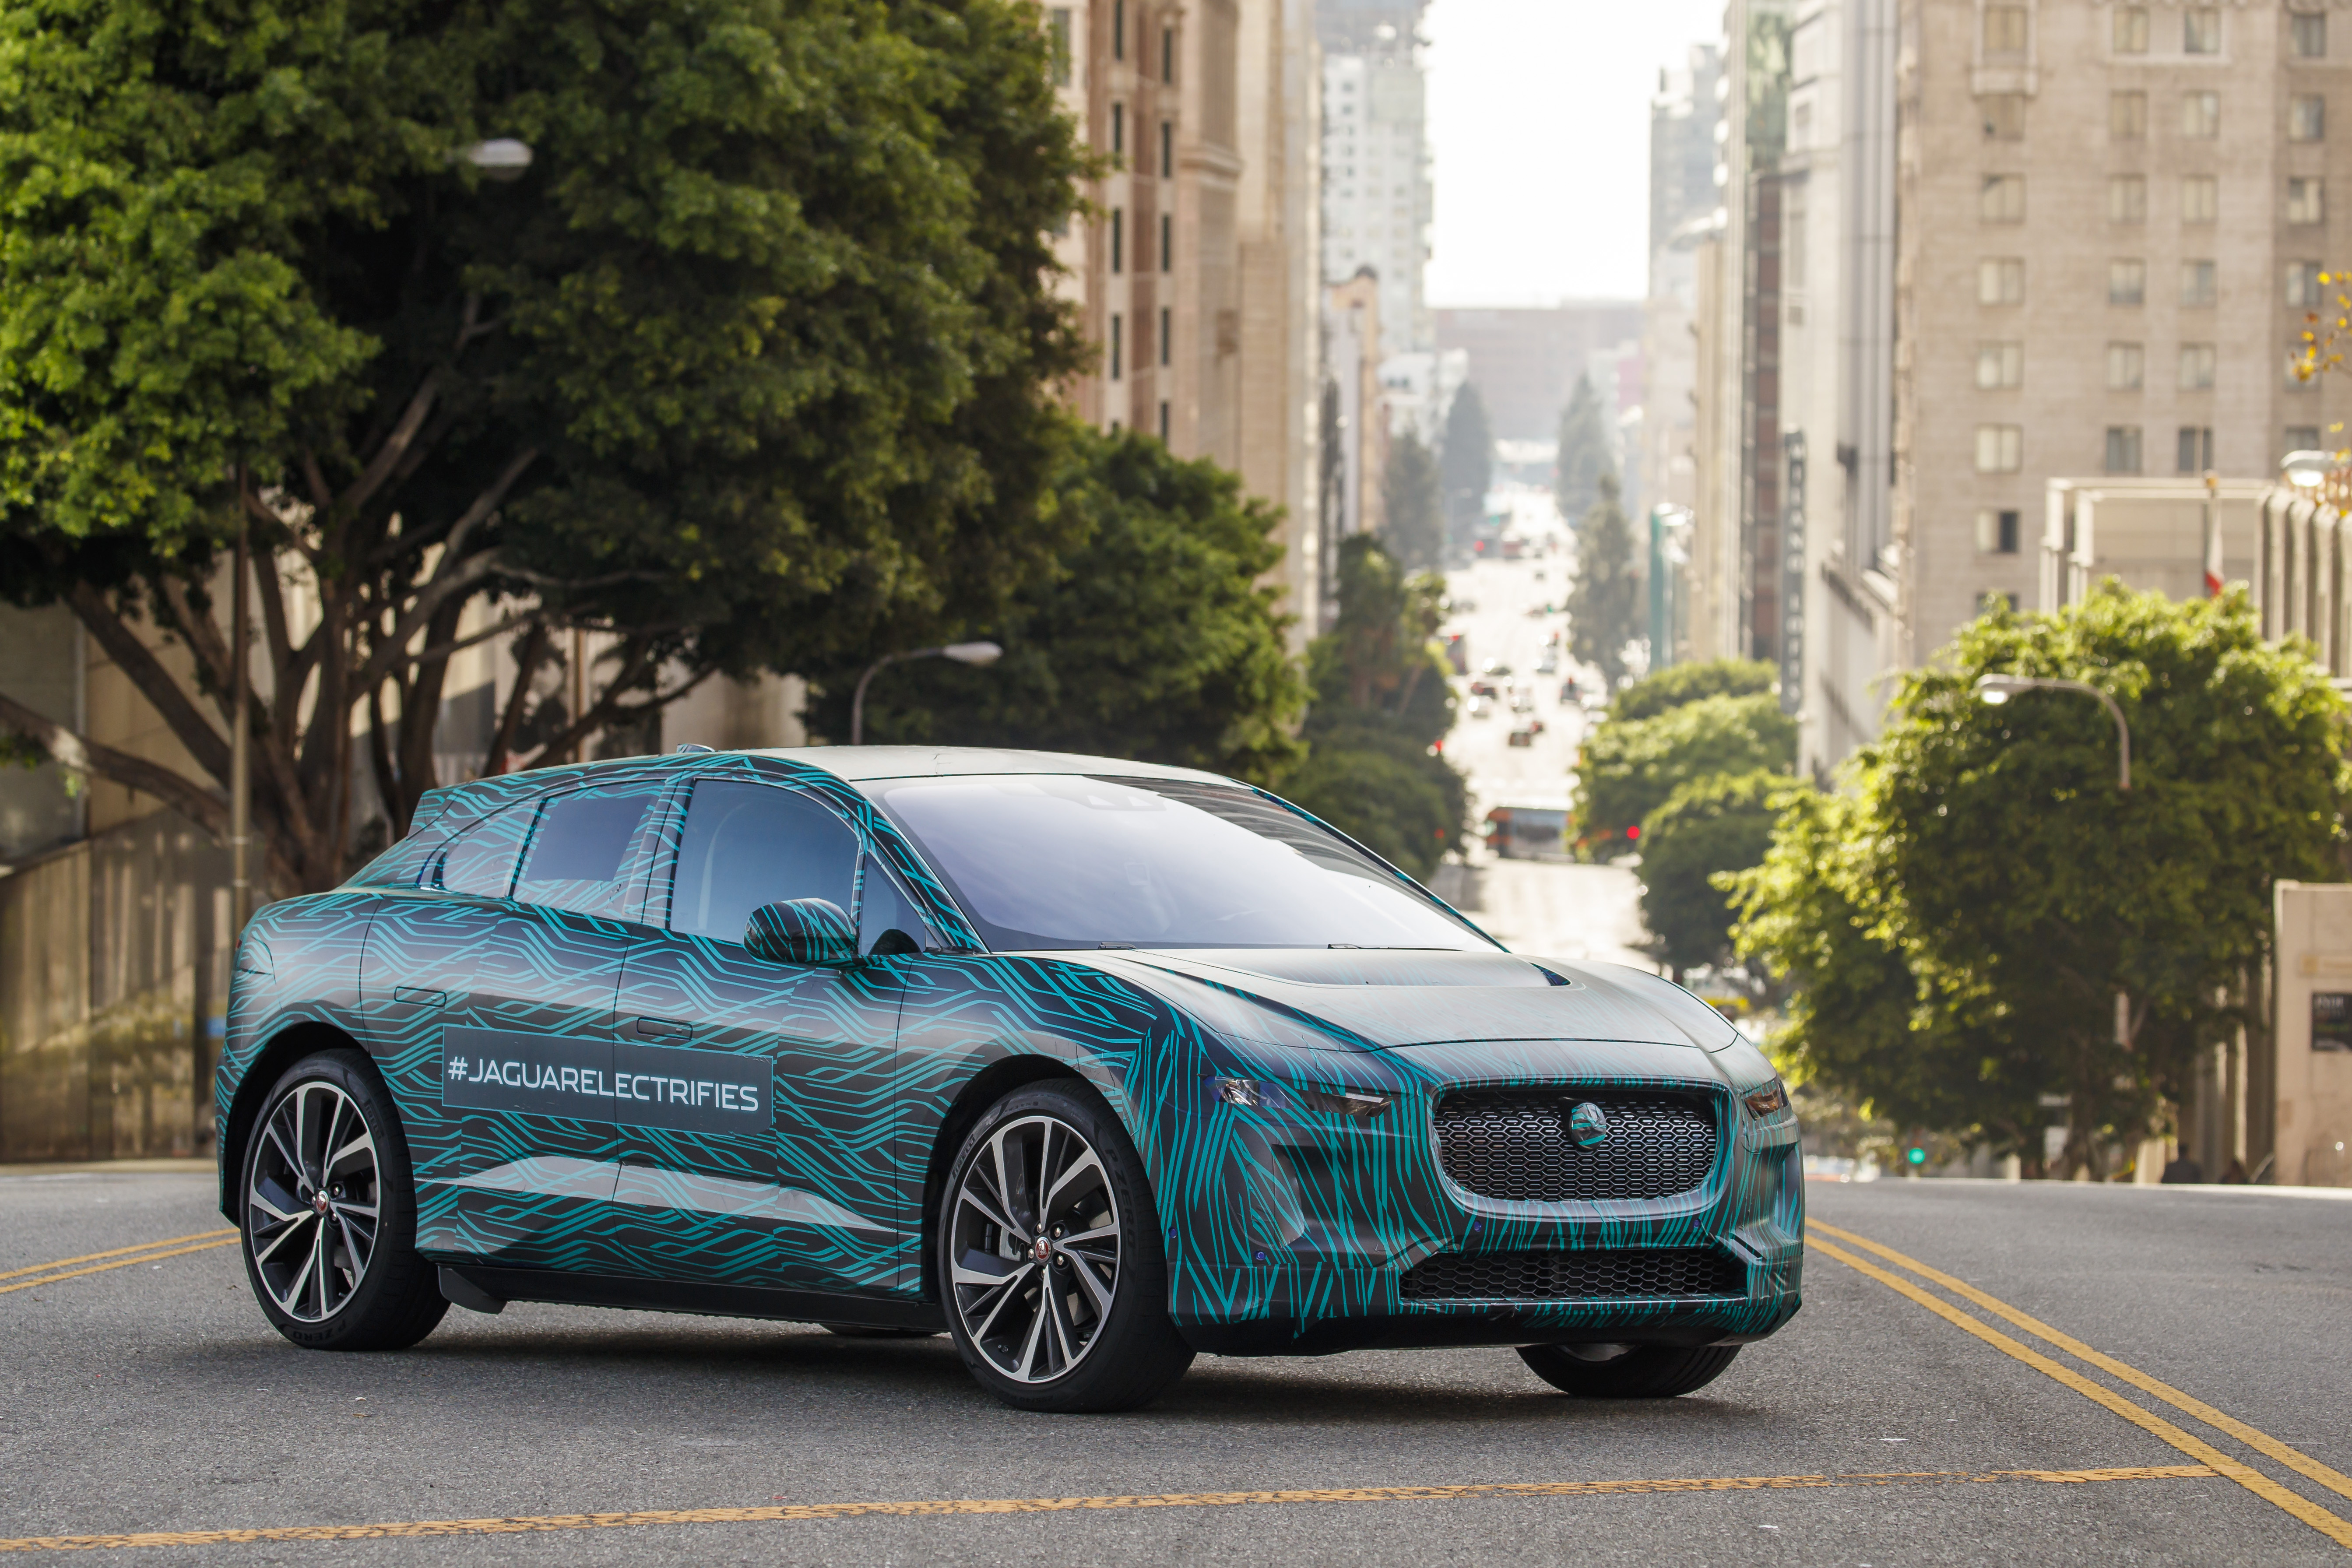 Jaguar Land Rover is introducing a new all-electric vehicle called the I-PACE.